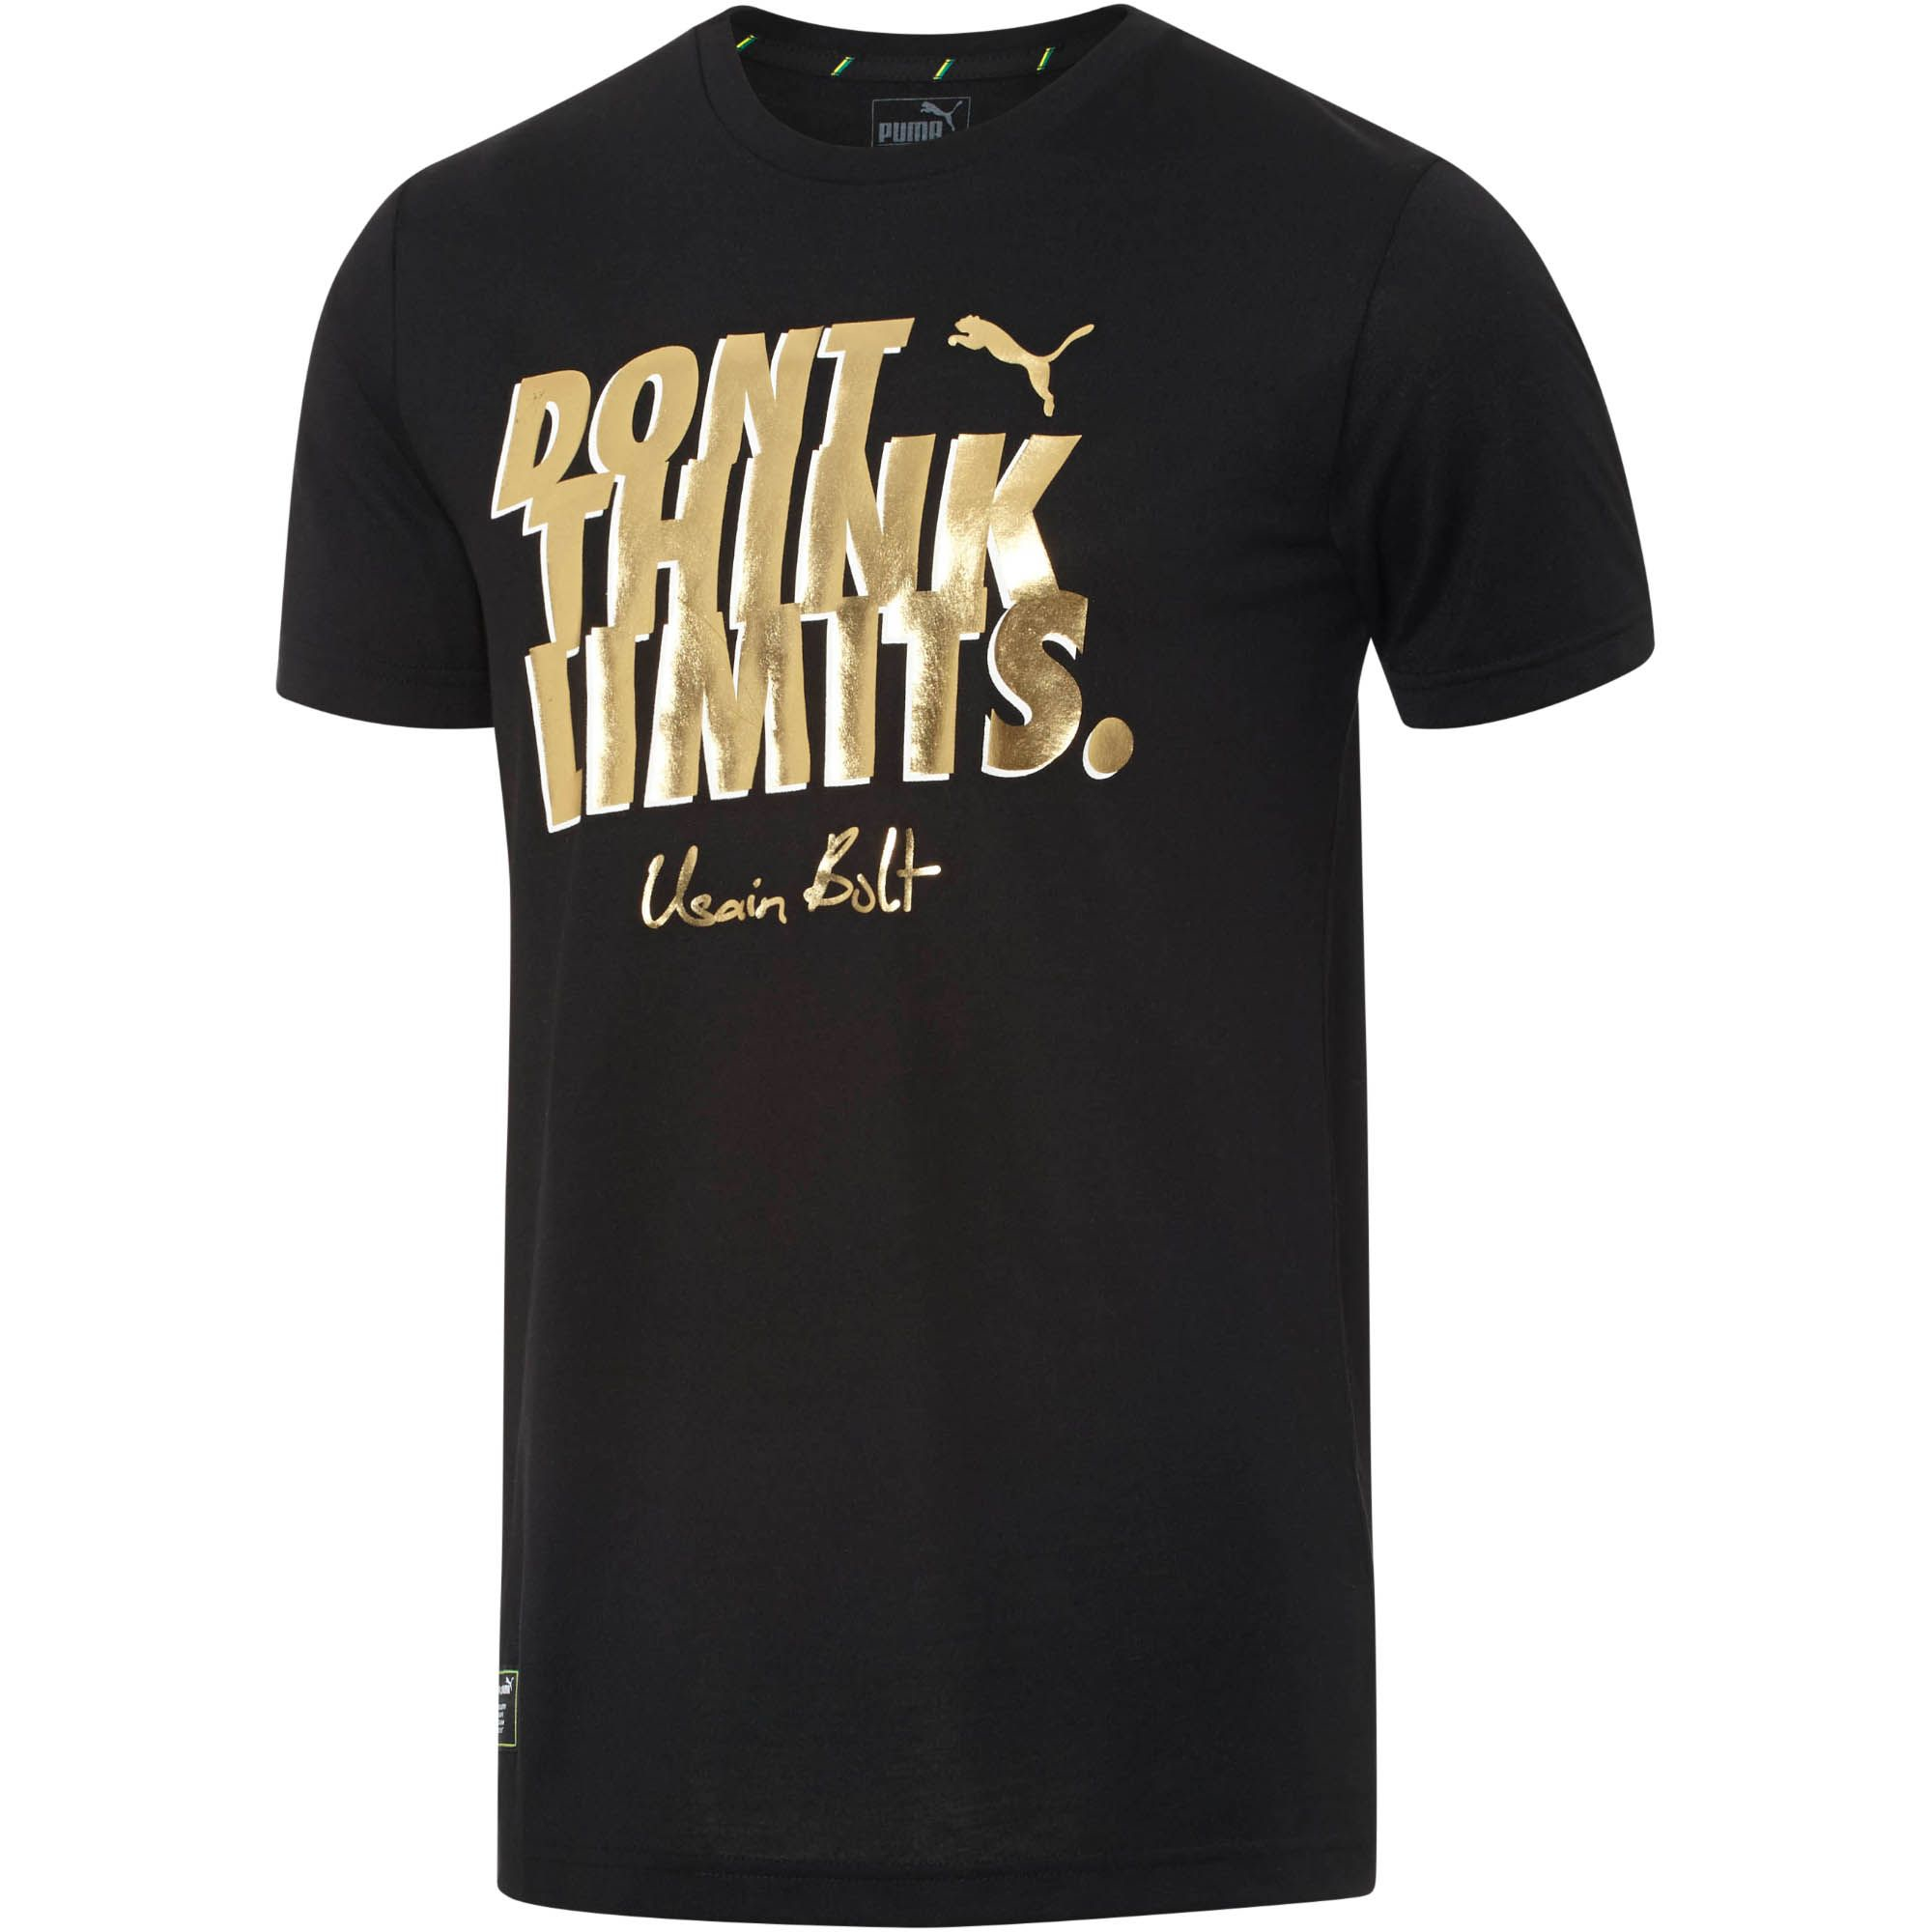 Puma Usain Bolt Slogan T Shirt In Black For Men Lyst